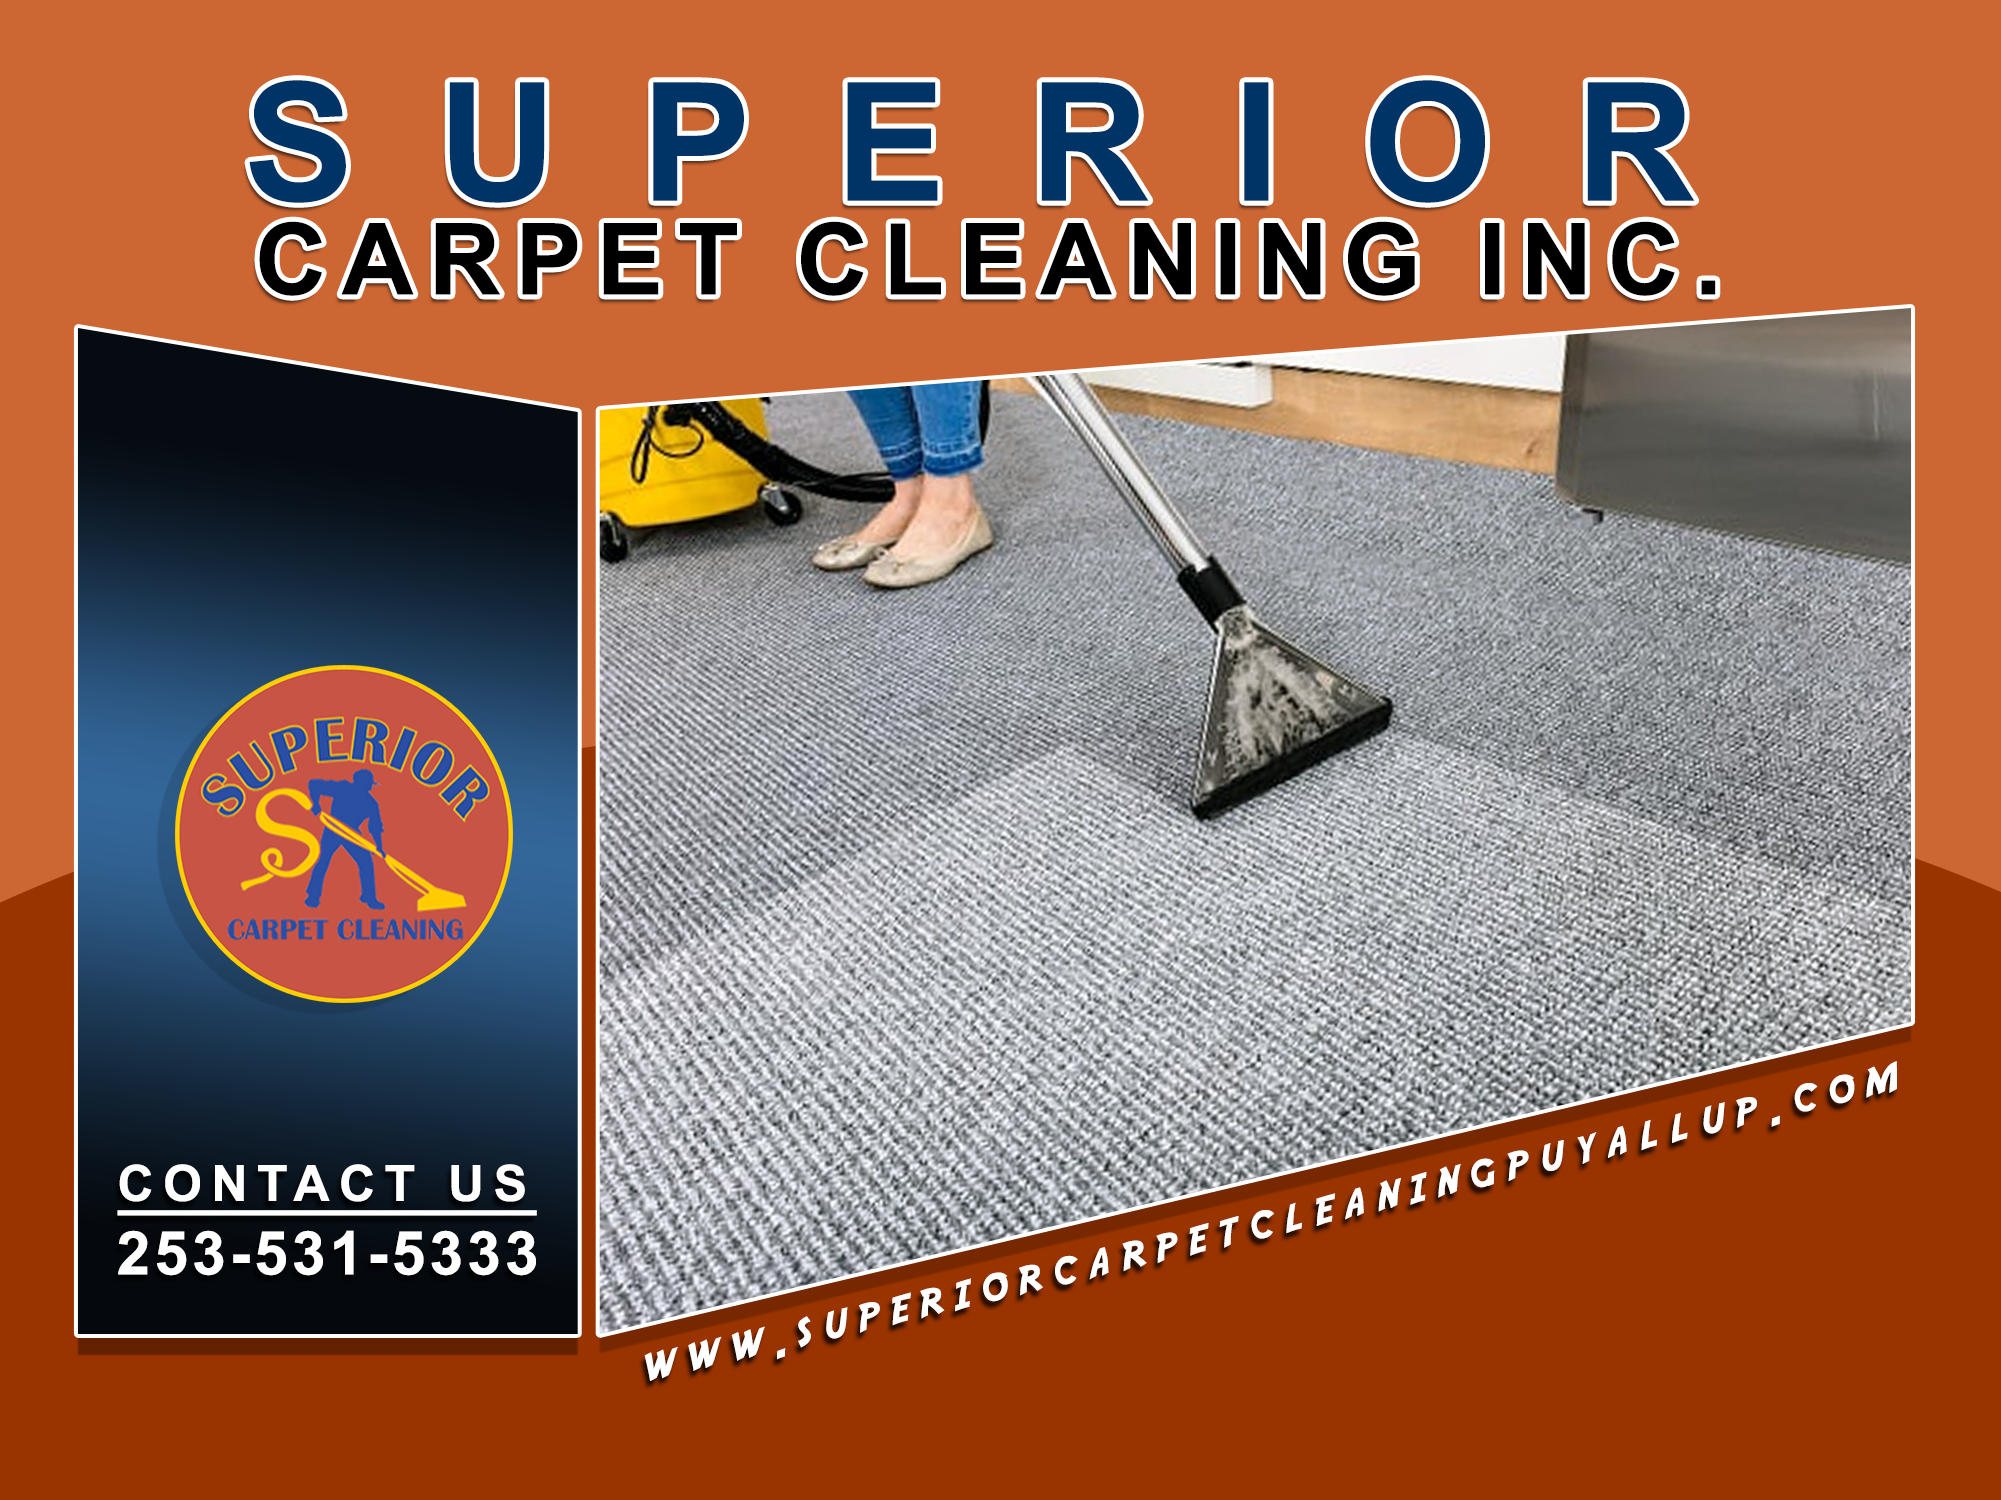 We provide professional carpet cleaning which we ensure to